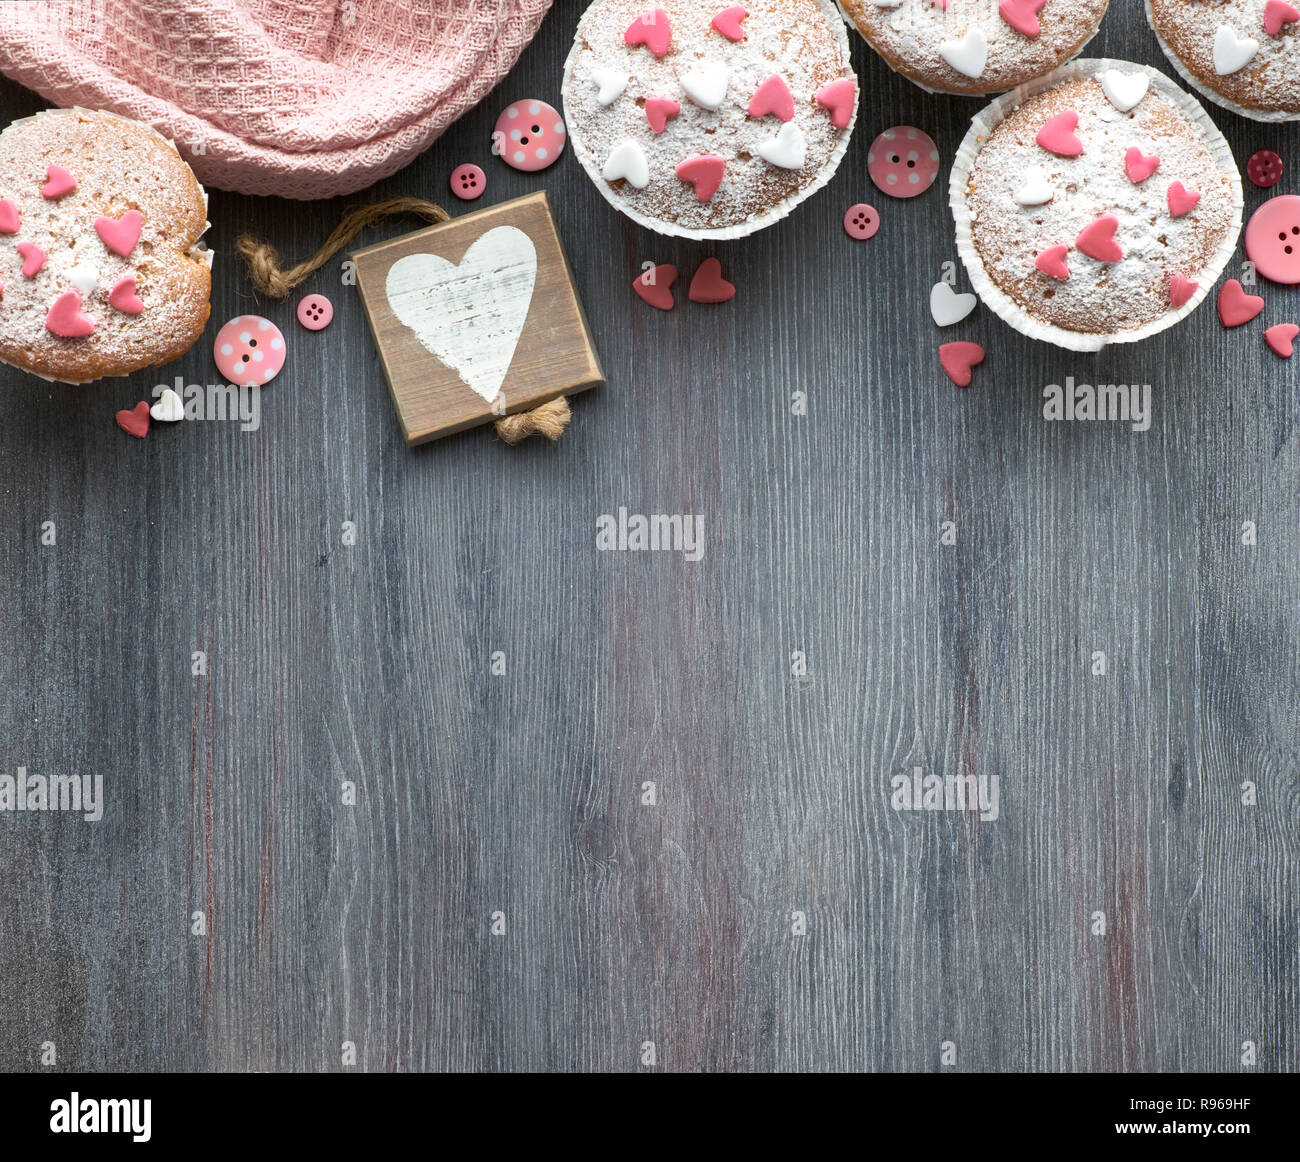 Sugar-sprinkled muffins with pink and white fondant icing hearts. Top view, plenty of copy-space. Birthday or Valentine concept. - Stock Image